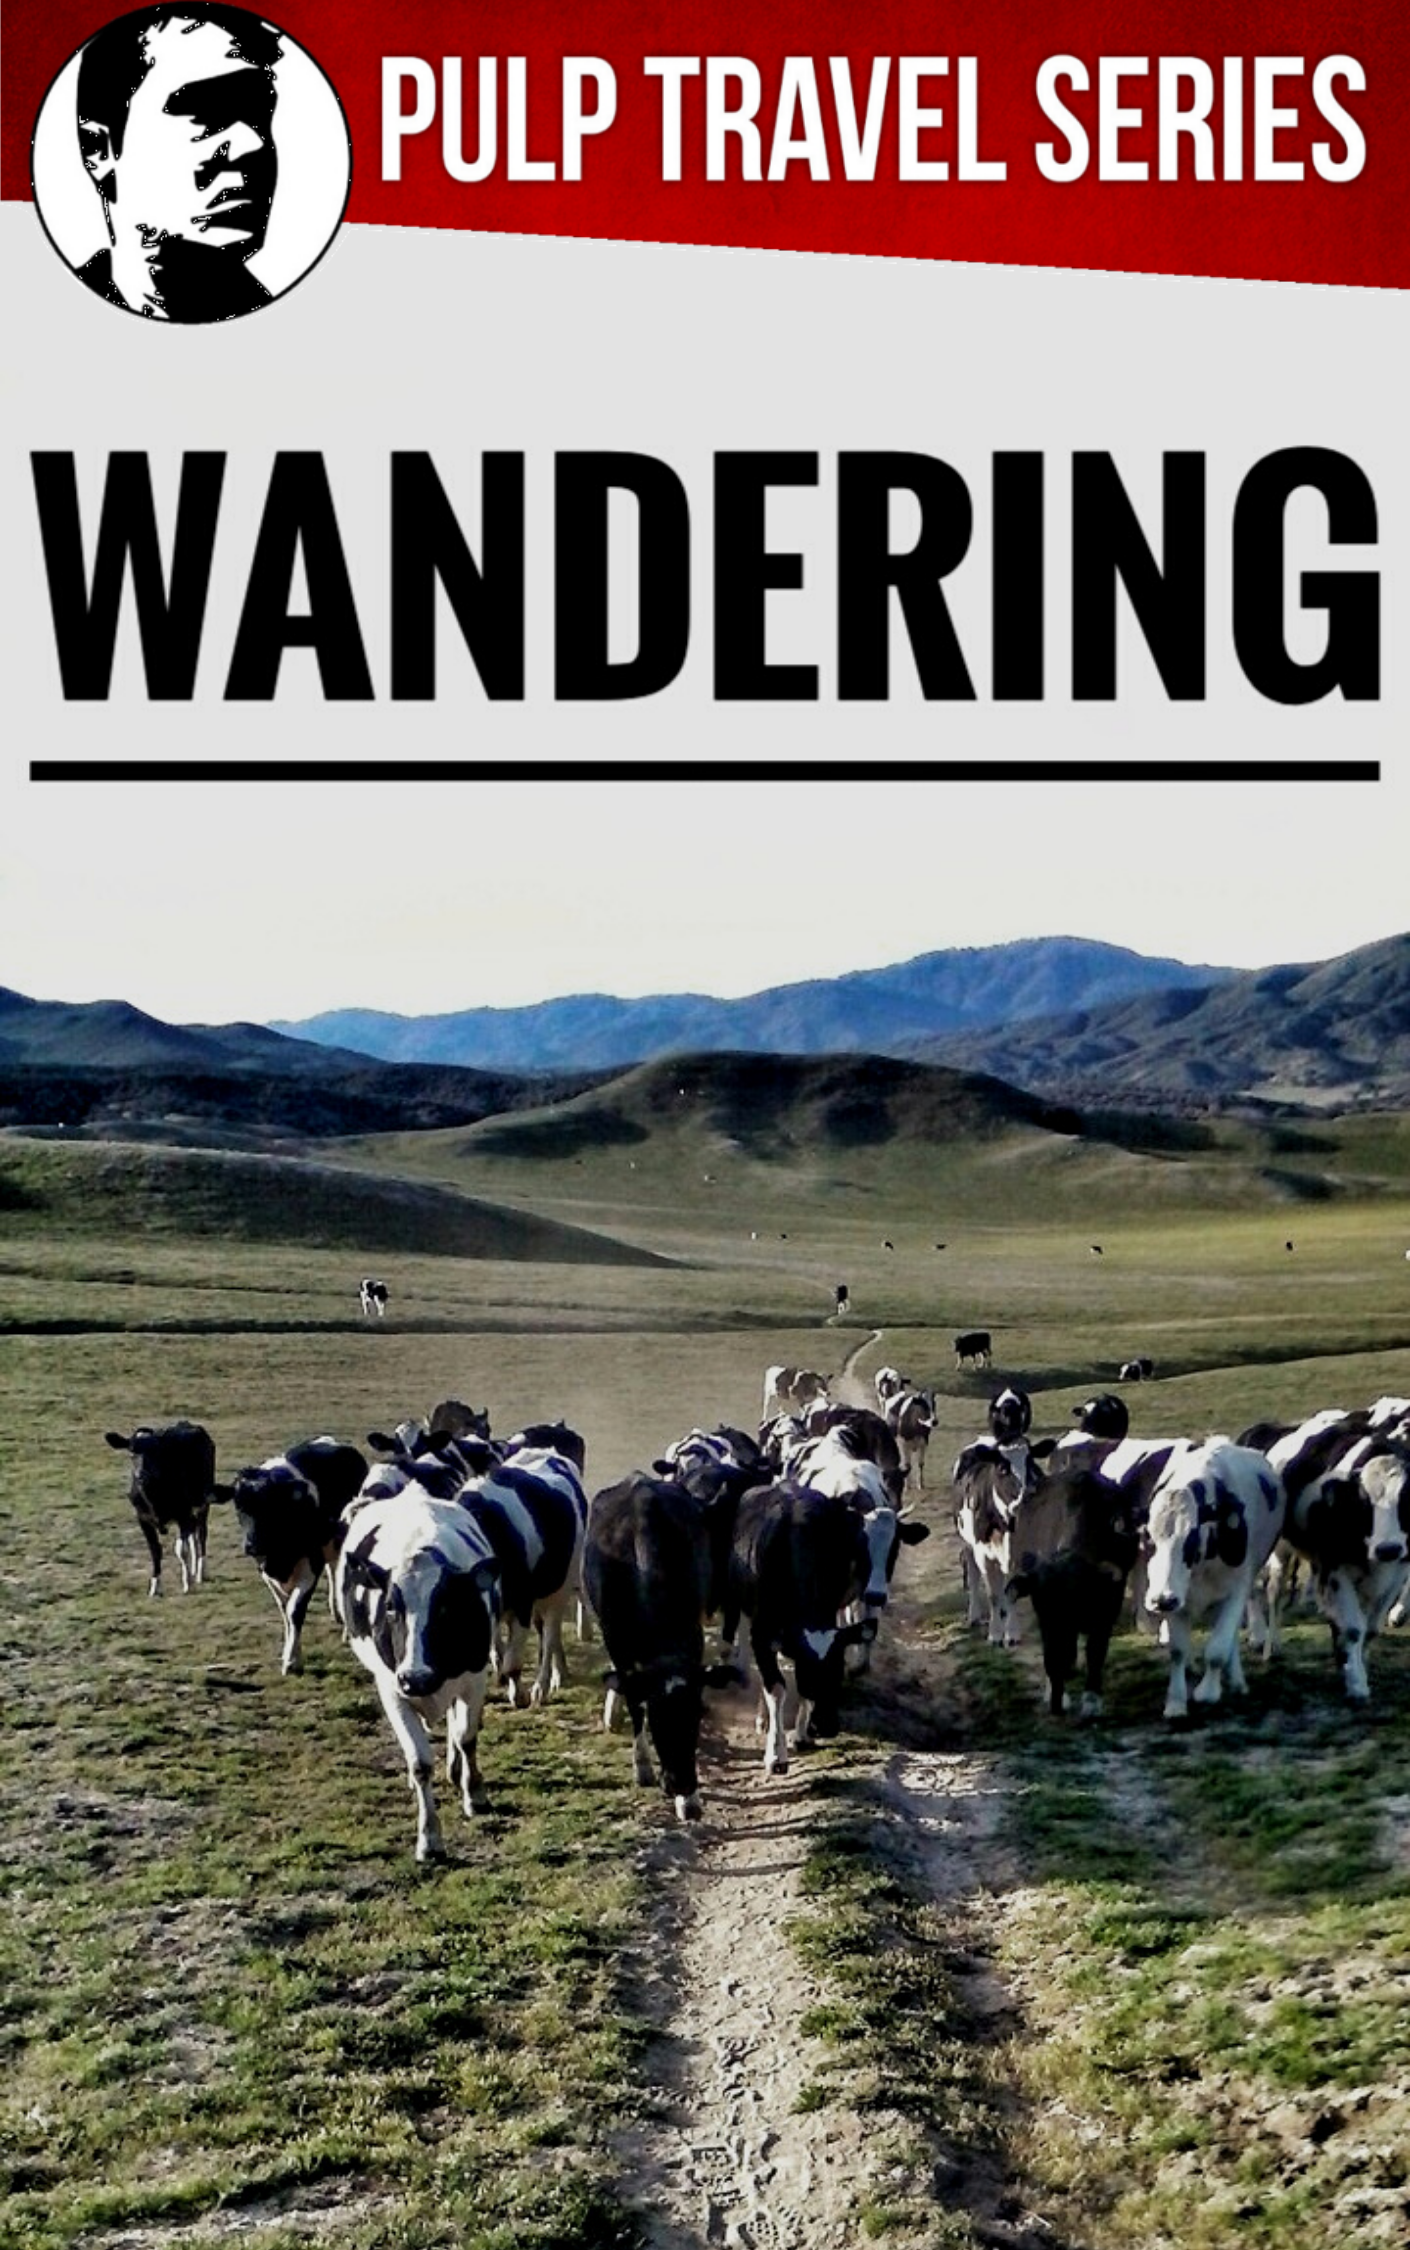 Wandering-Pulp-Travel-Cleanshave